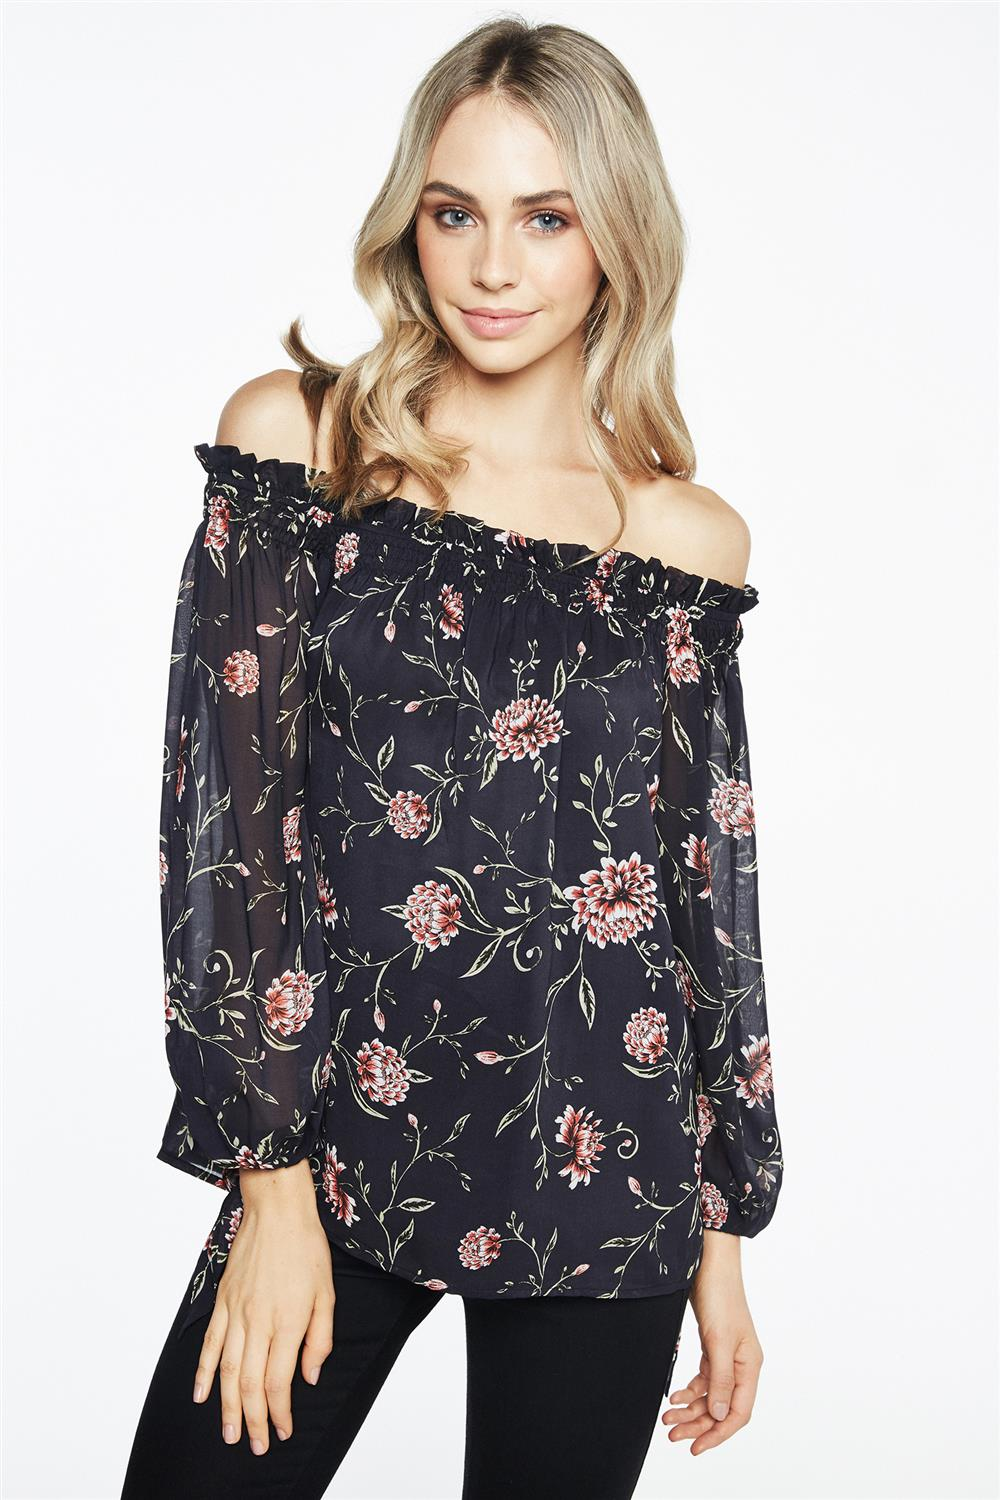 BARDOT Gothic Floral Top $89.99